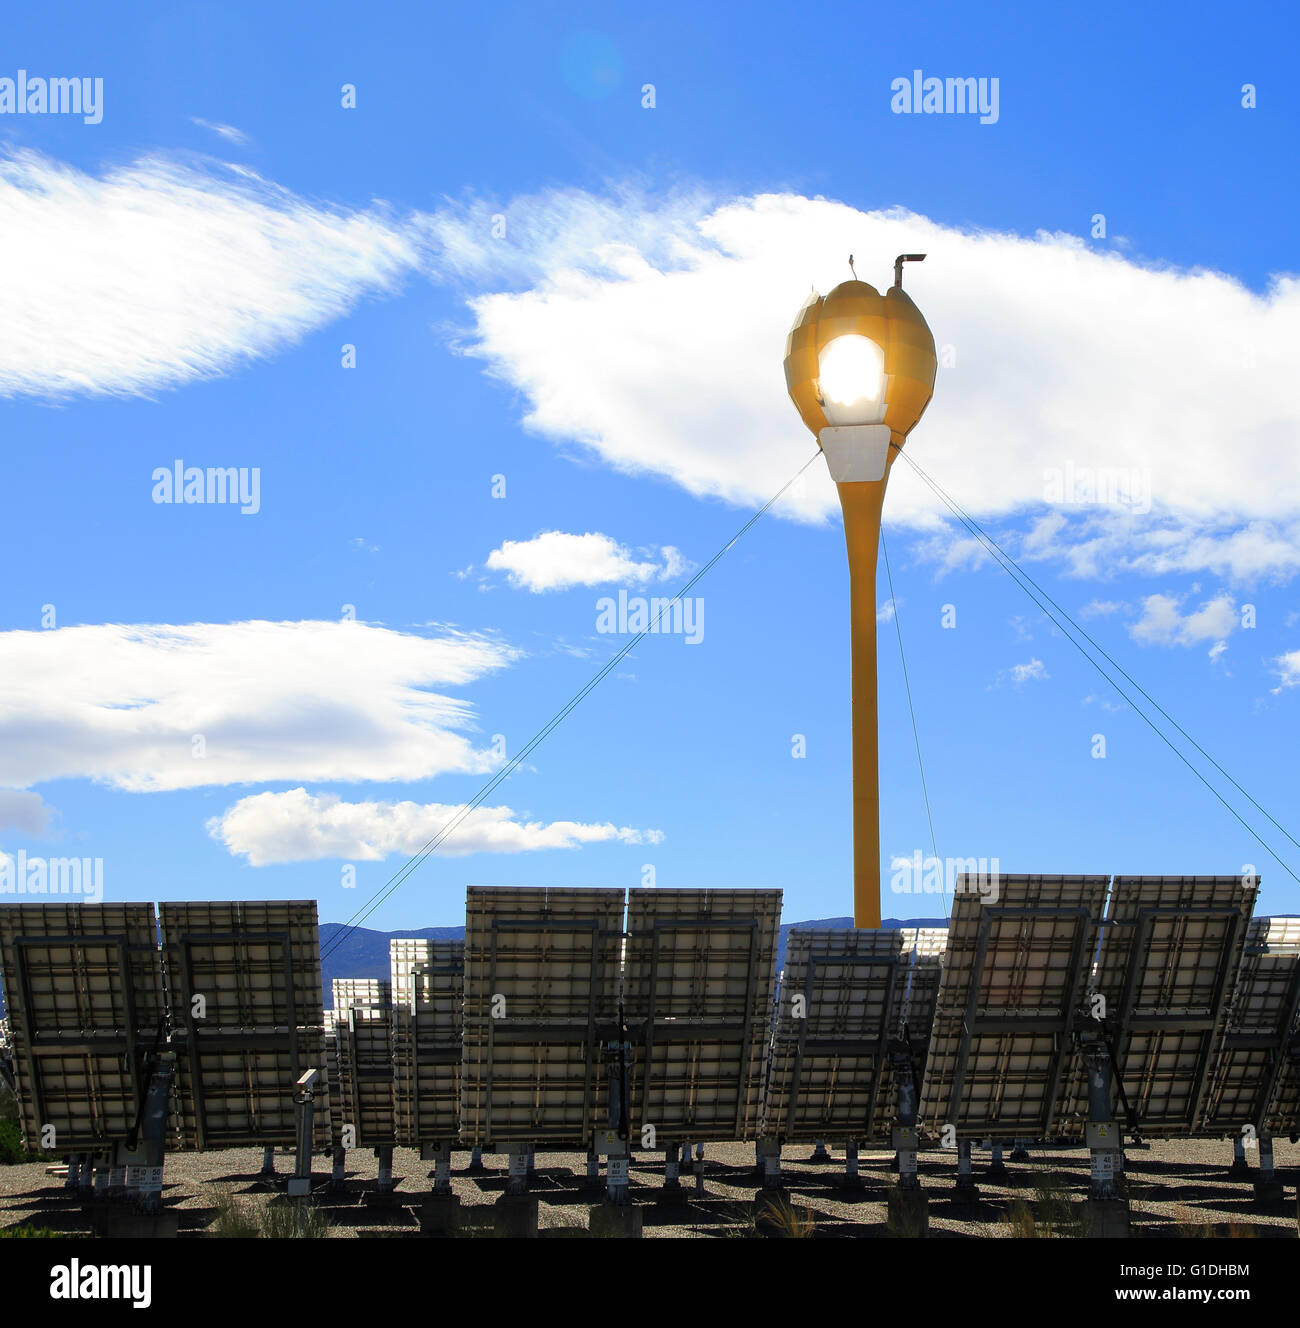 Heliostats reflect sunrays to receiver tower, solar energy scientific research centre, Tabernas, Almeria, SpainStock Photo